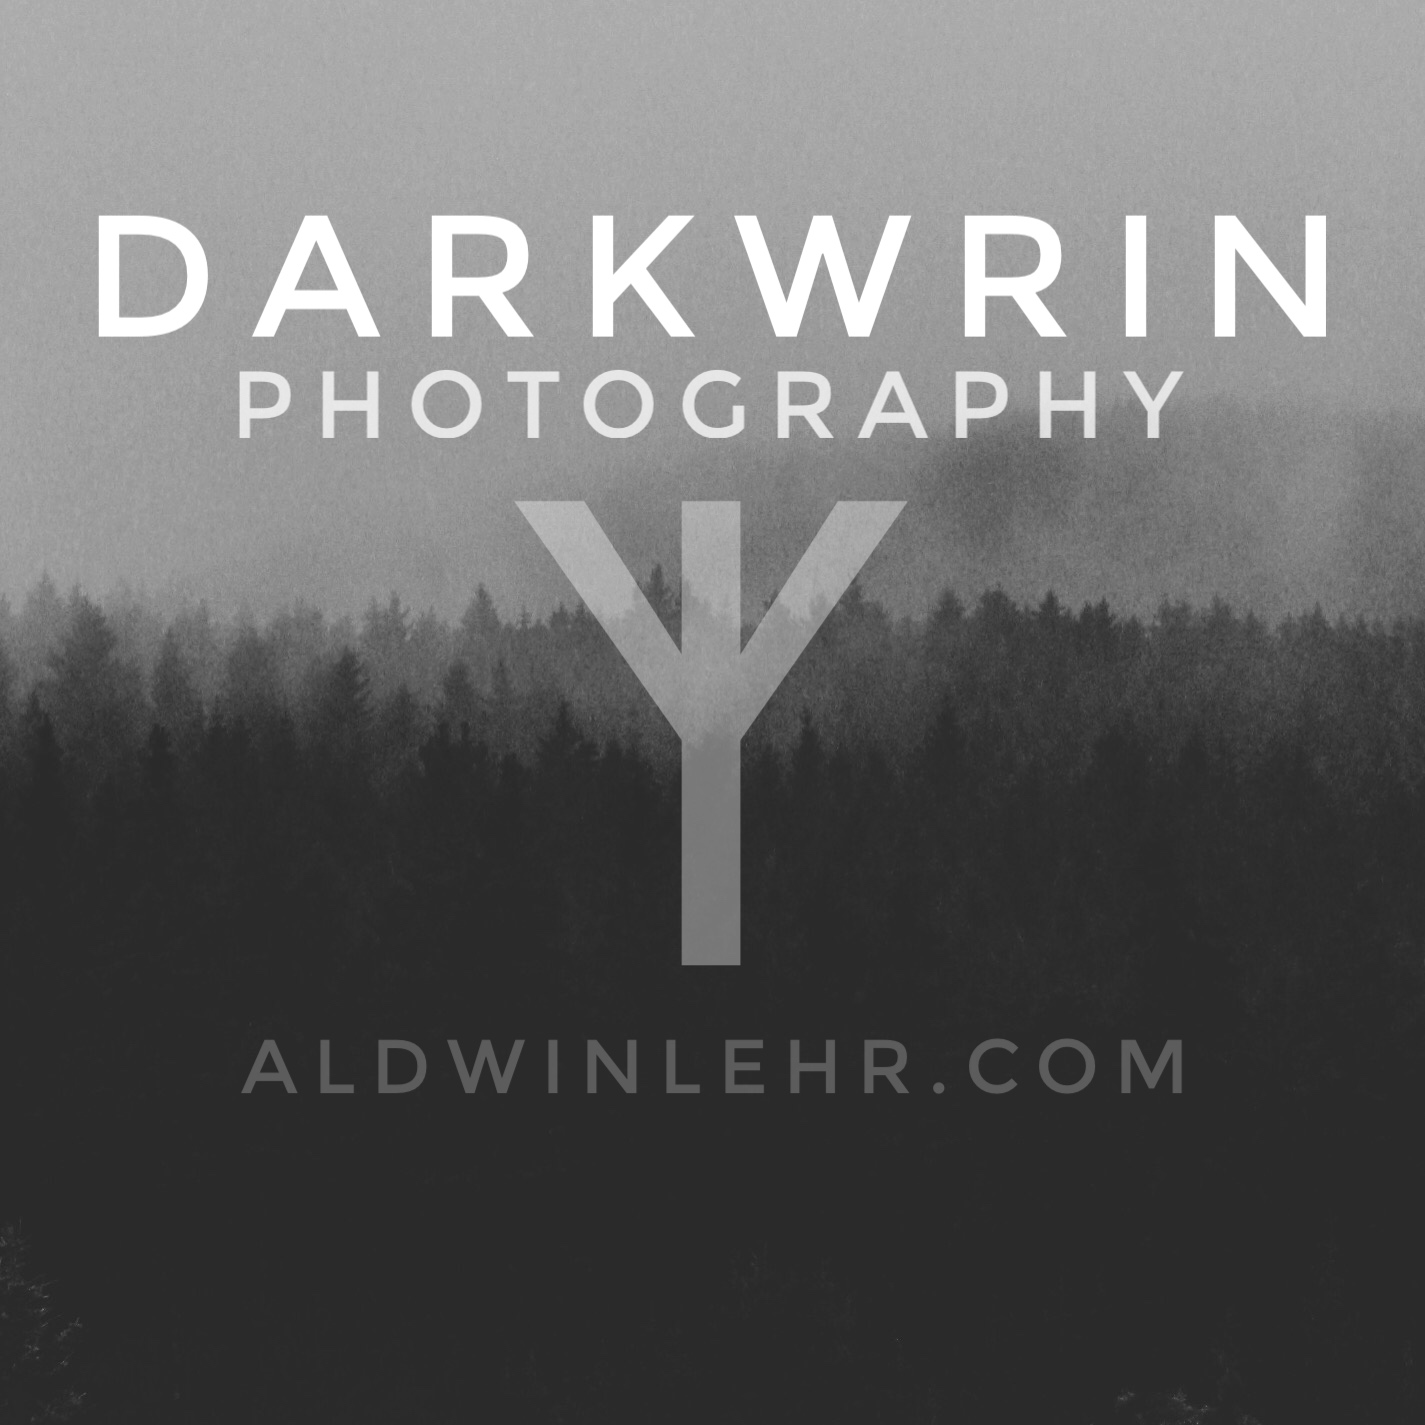 Darkwrin Photography